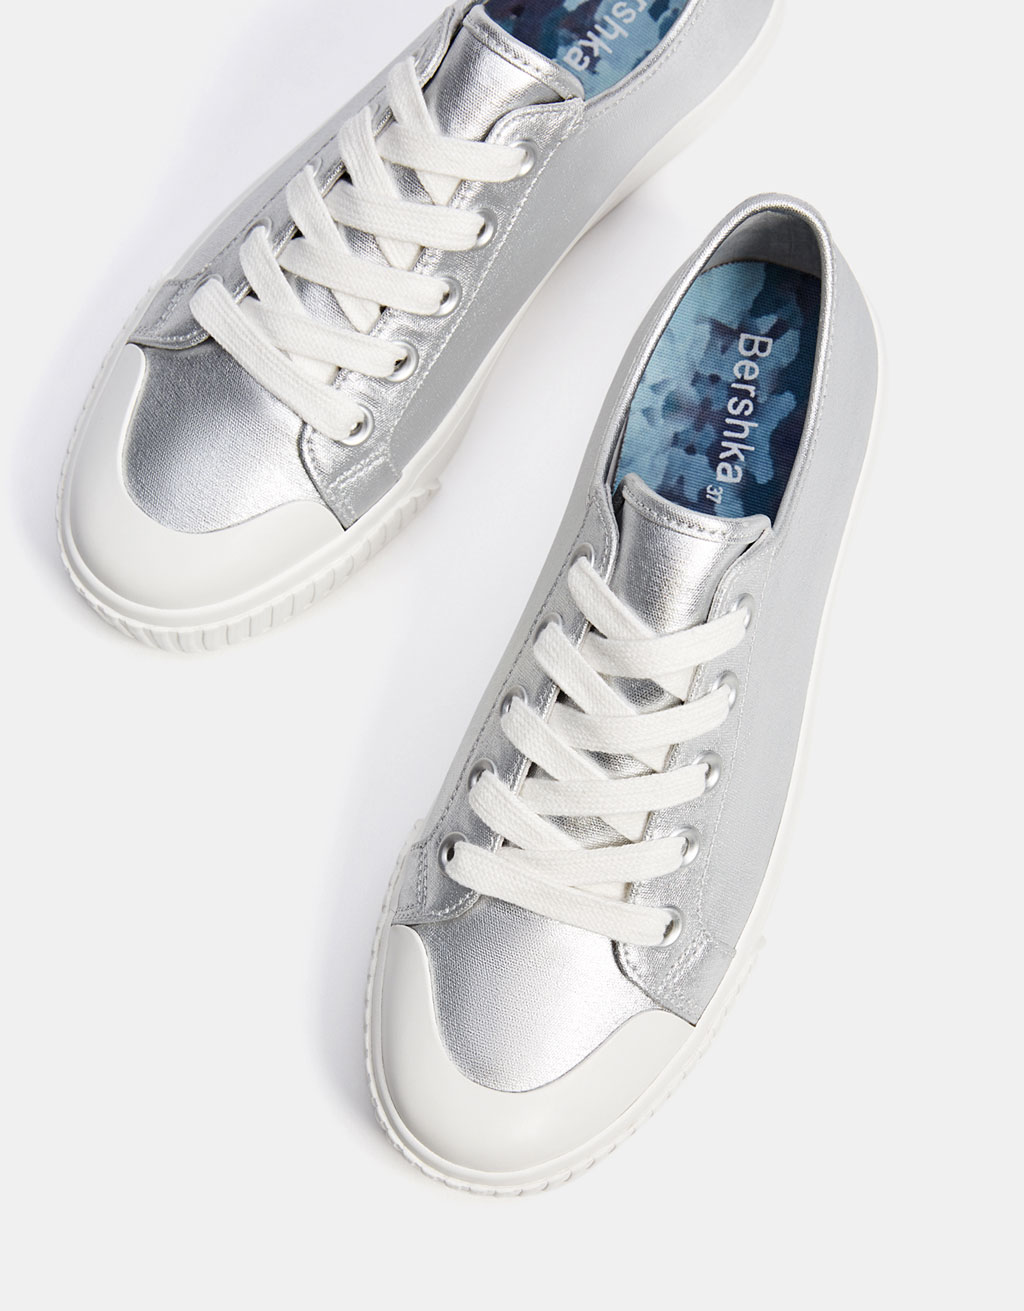 Metallic sneakers with rubber toe cap